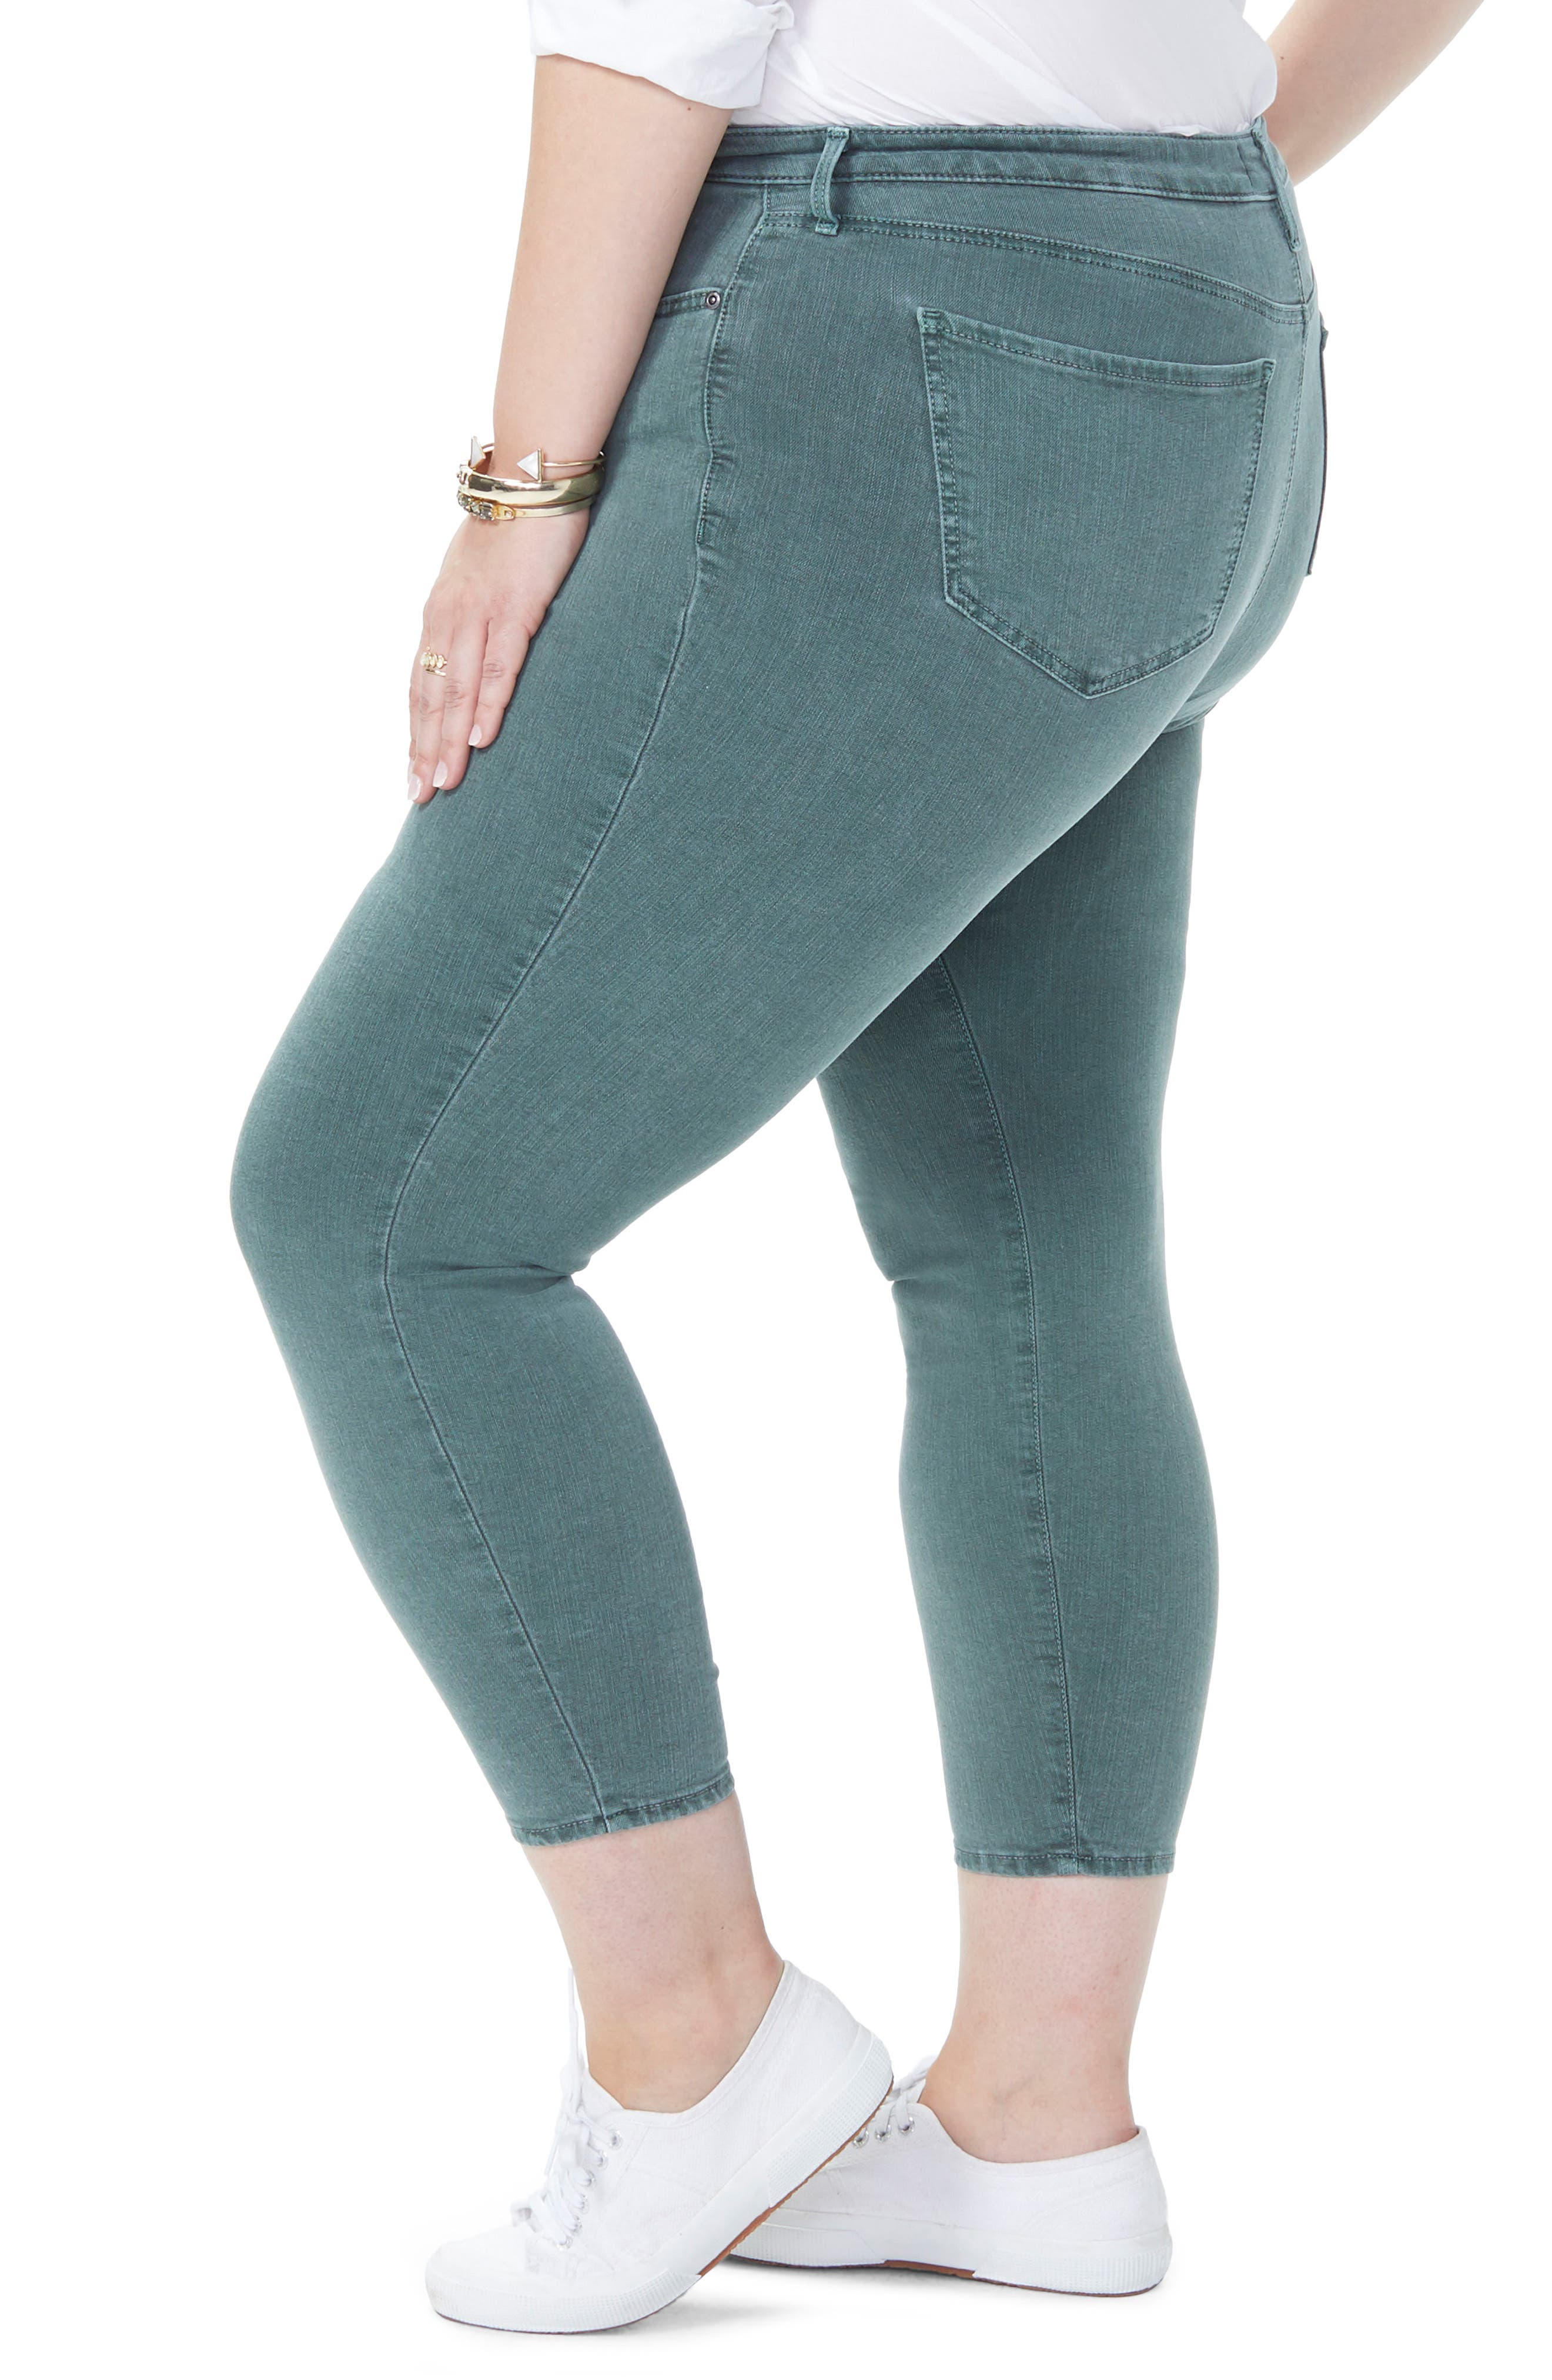 Ami Stretch Ankle Skinny Jeans,                             Alternate thumbnail 3, color,                             SUGAR PINE